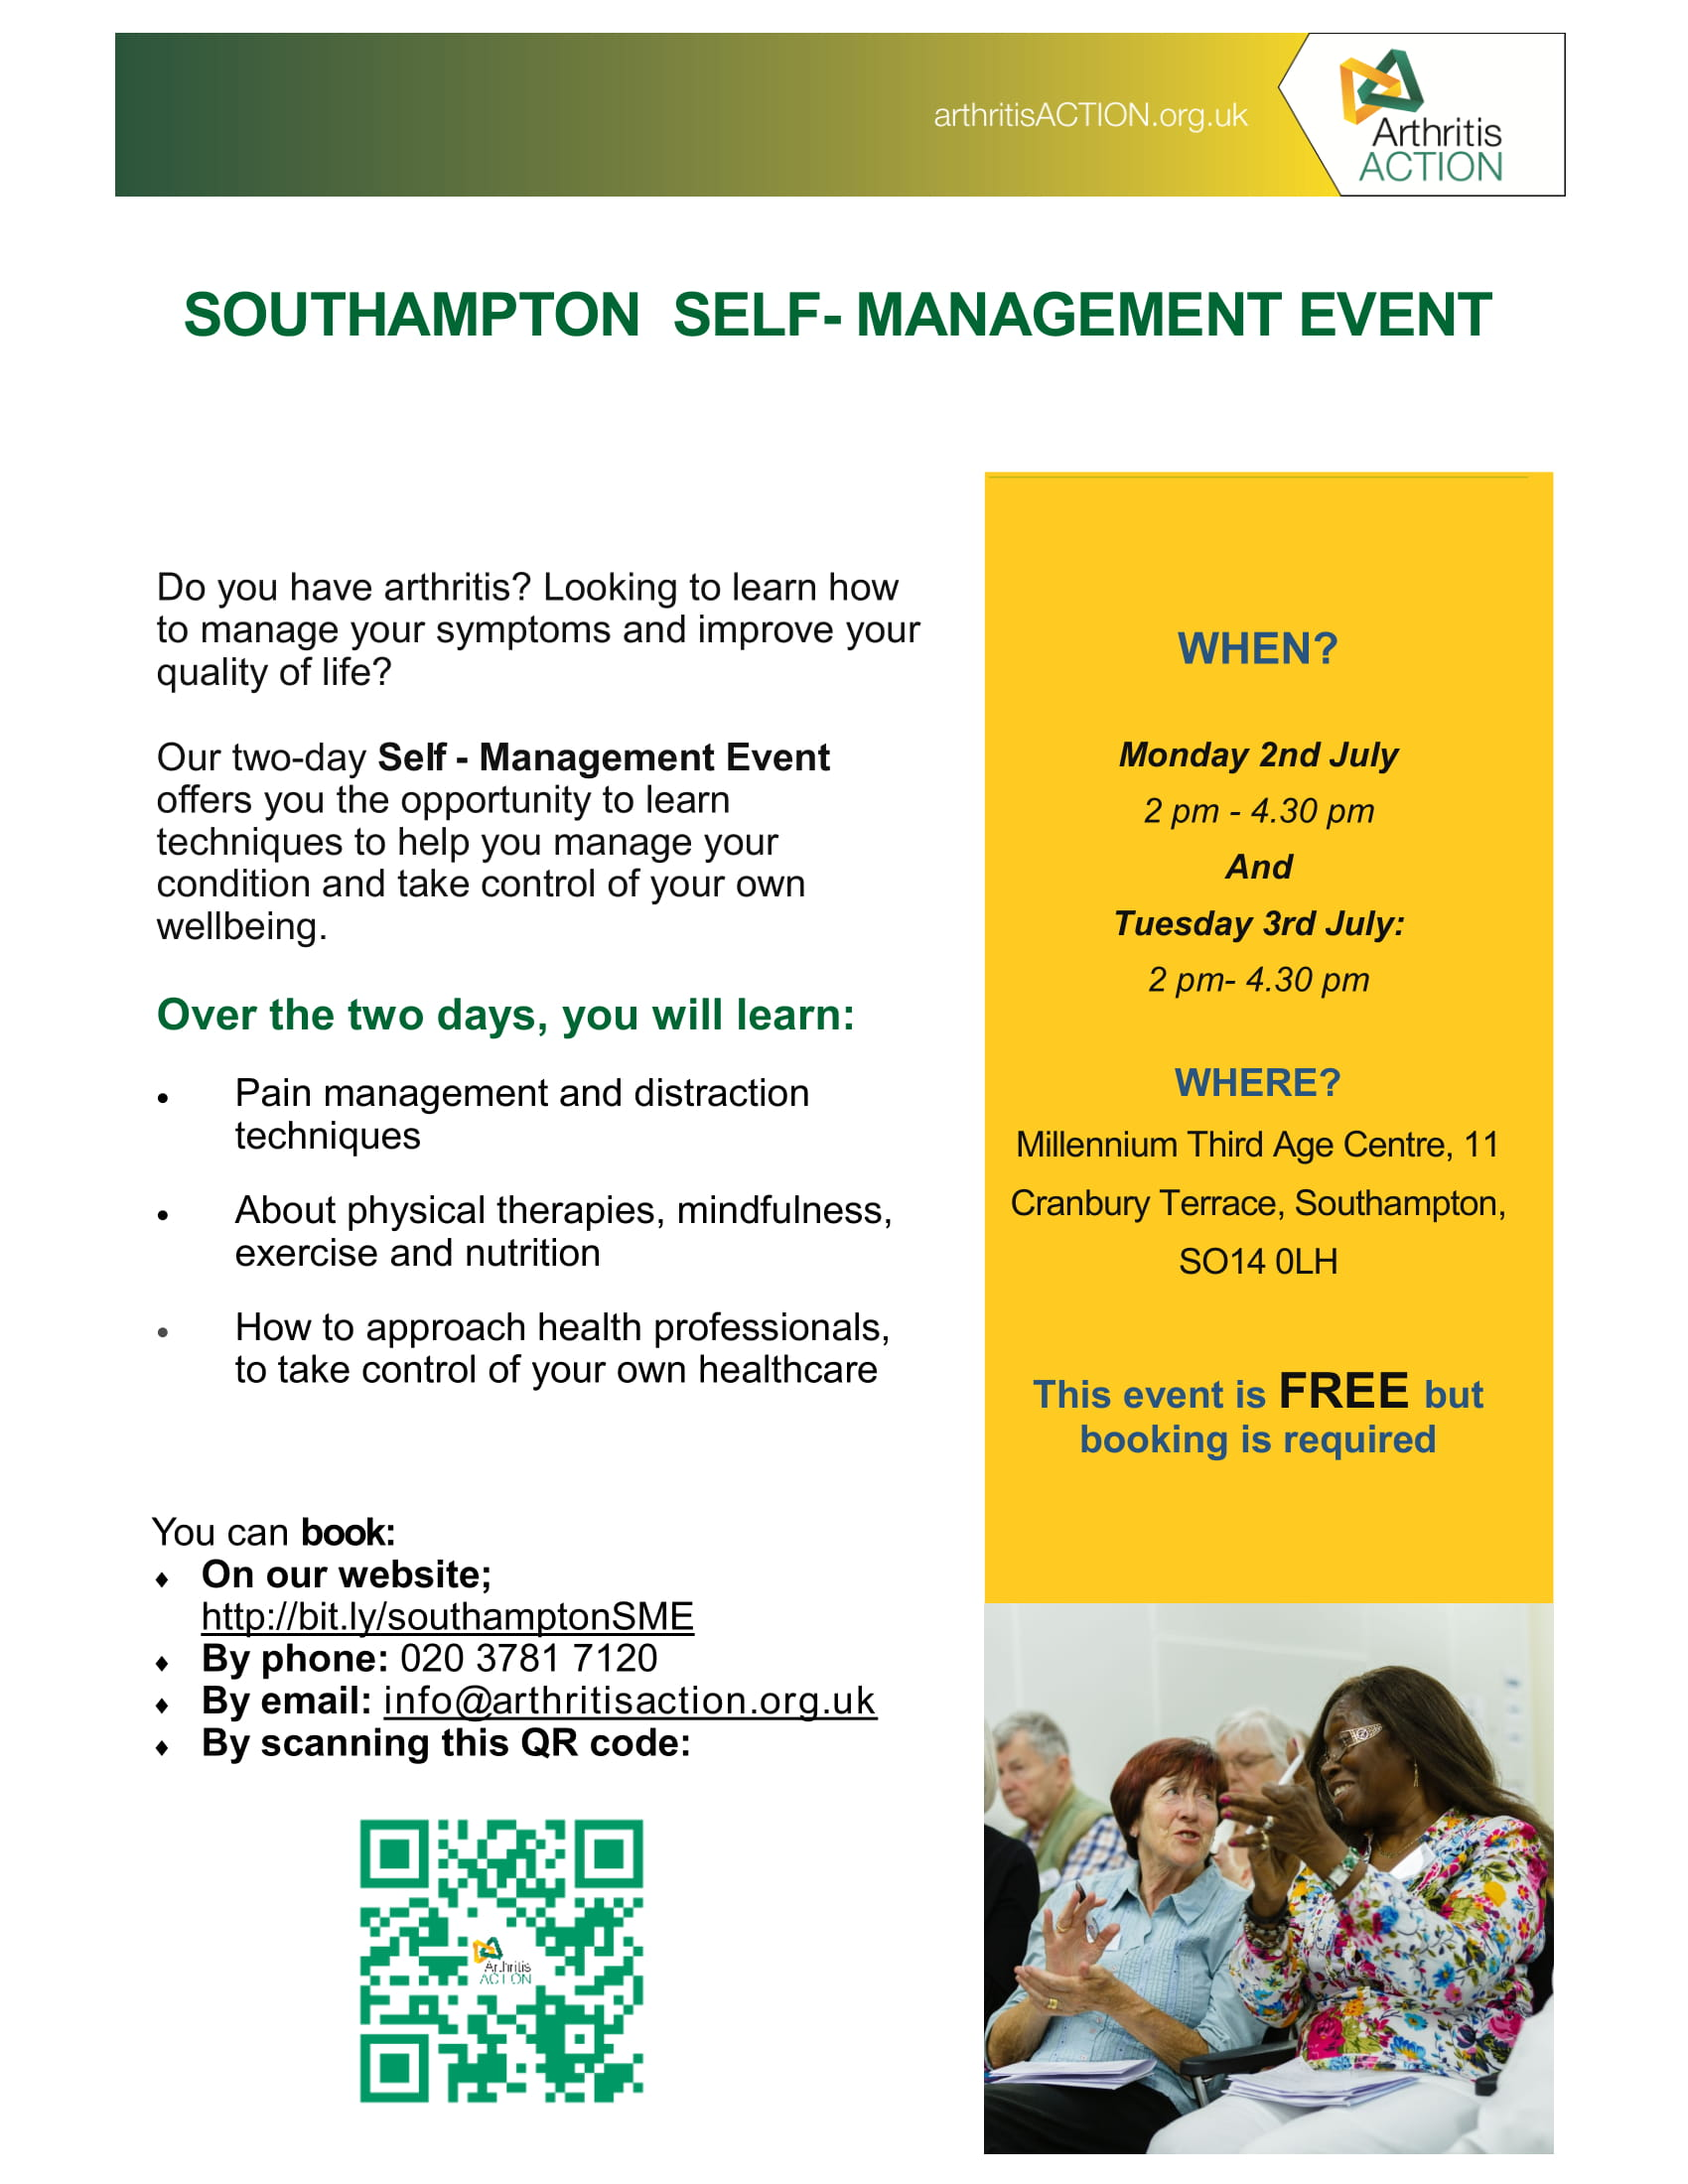 Arthritis Action SelfManagement event on 2 July at 1400